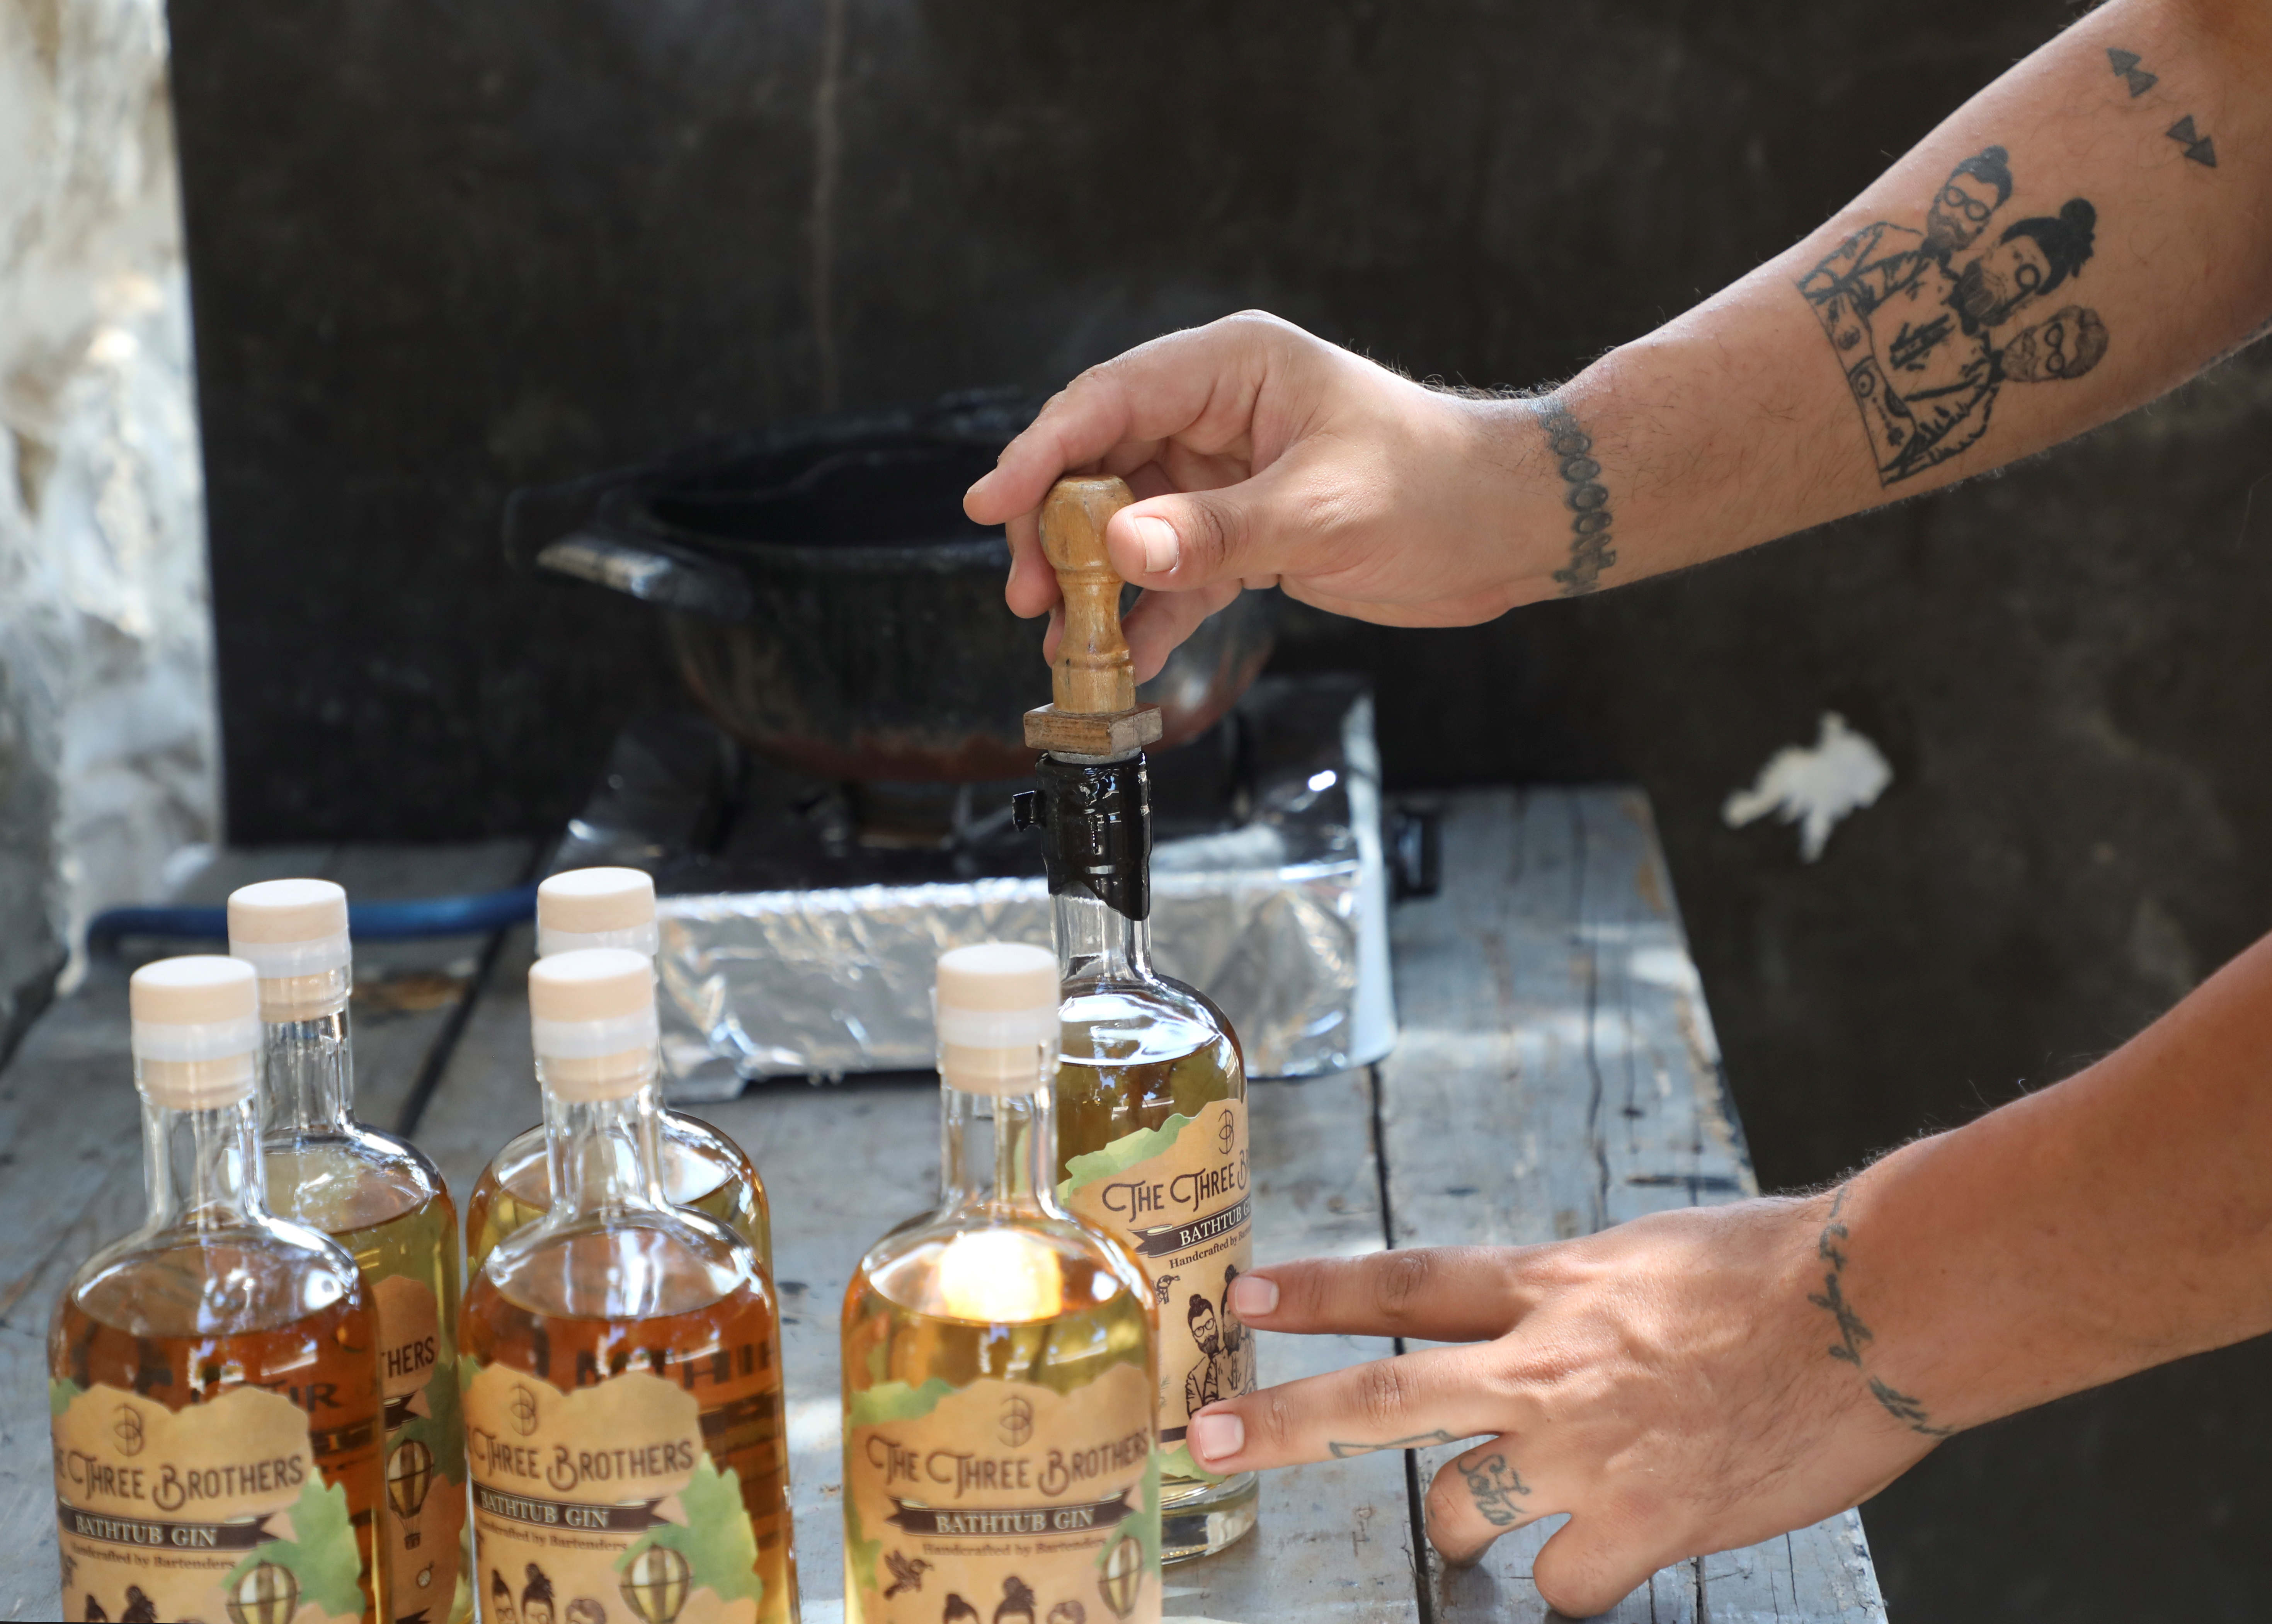 Ralph Malak, one of the founders and chief taste developer of the Three Brothers distillery, stamps a gin bottle in Smar Jbeil, Lebanon June 15, 2021.  REUTERS/Mohamed Azakir